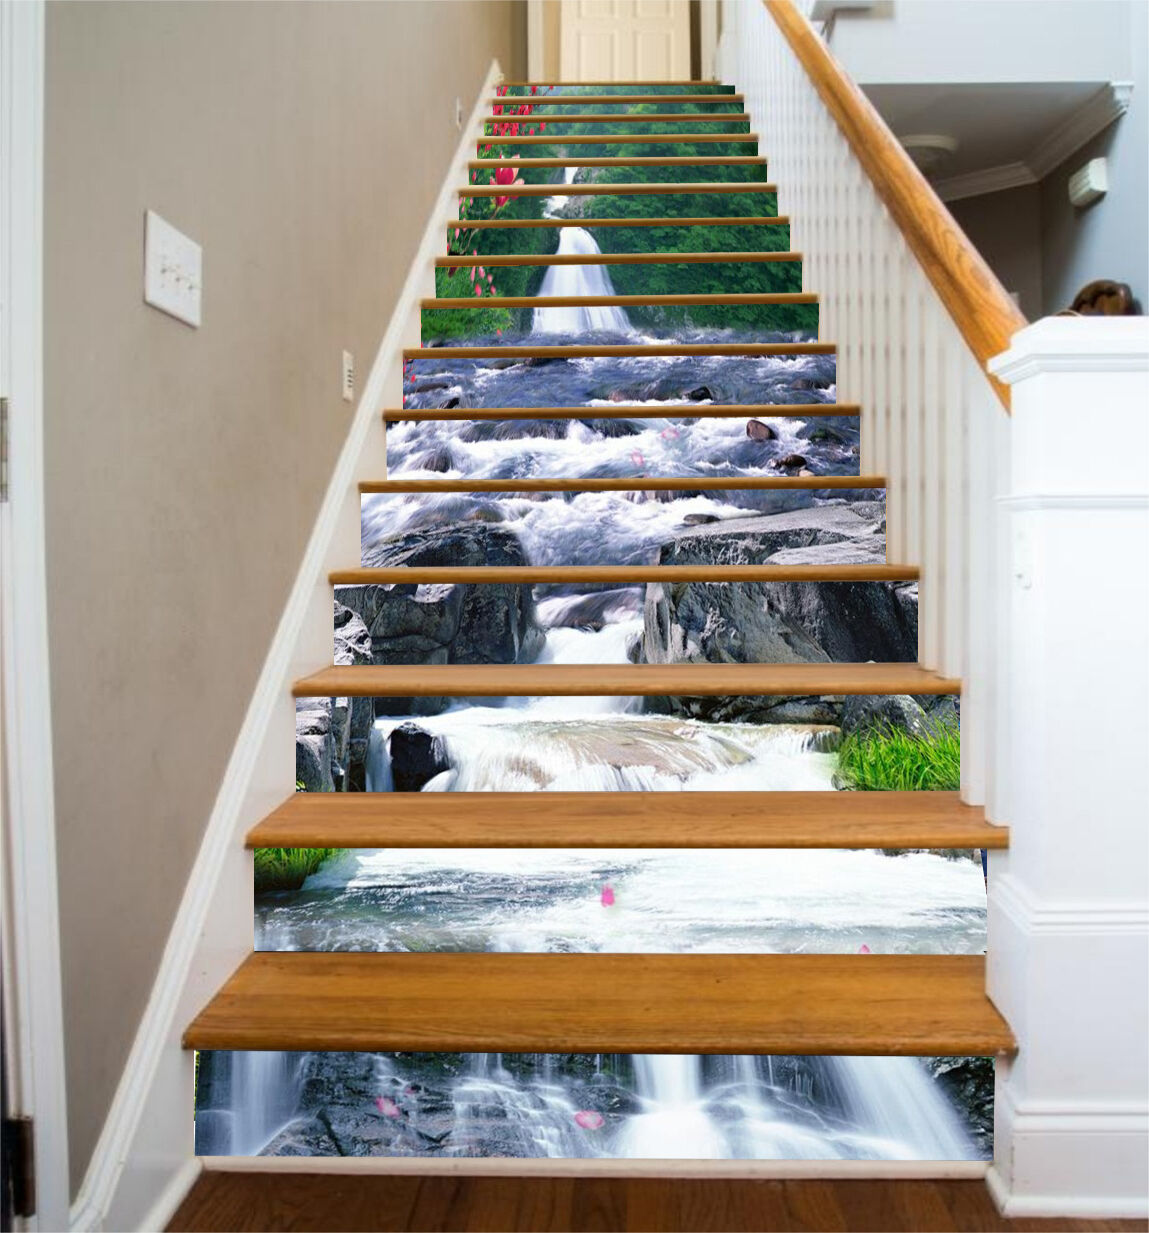 3D Abundant River 7 Stair Risers Decoration Photo Mural Vinyl Decal WandPapier AU